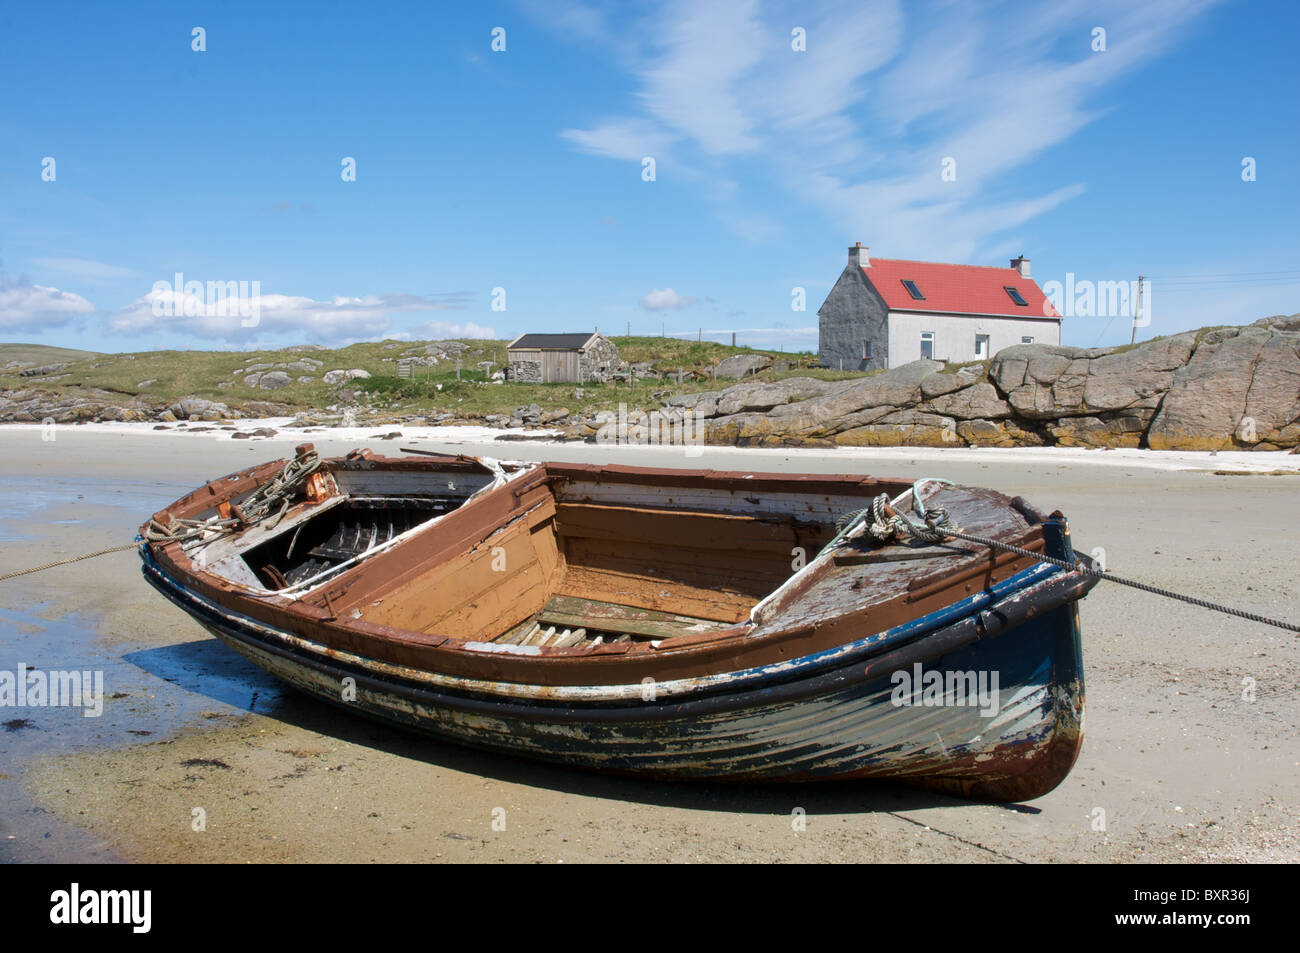 Crannag house, Traigh Mhor (Big Beach), Barra, Outer Hebrides, Scotland, UK - Stock Image